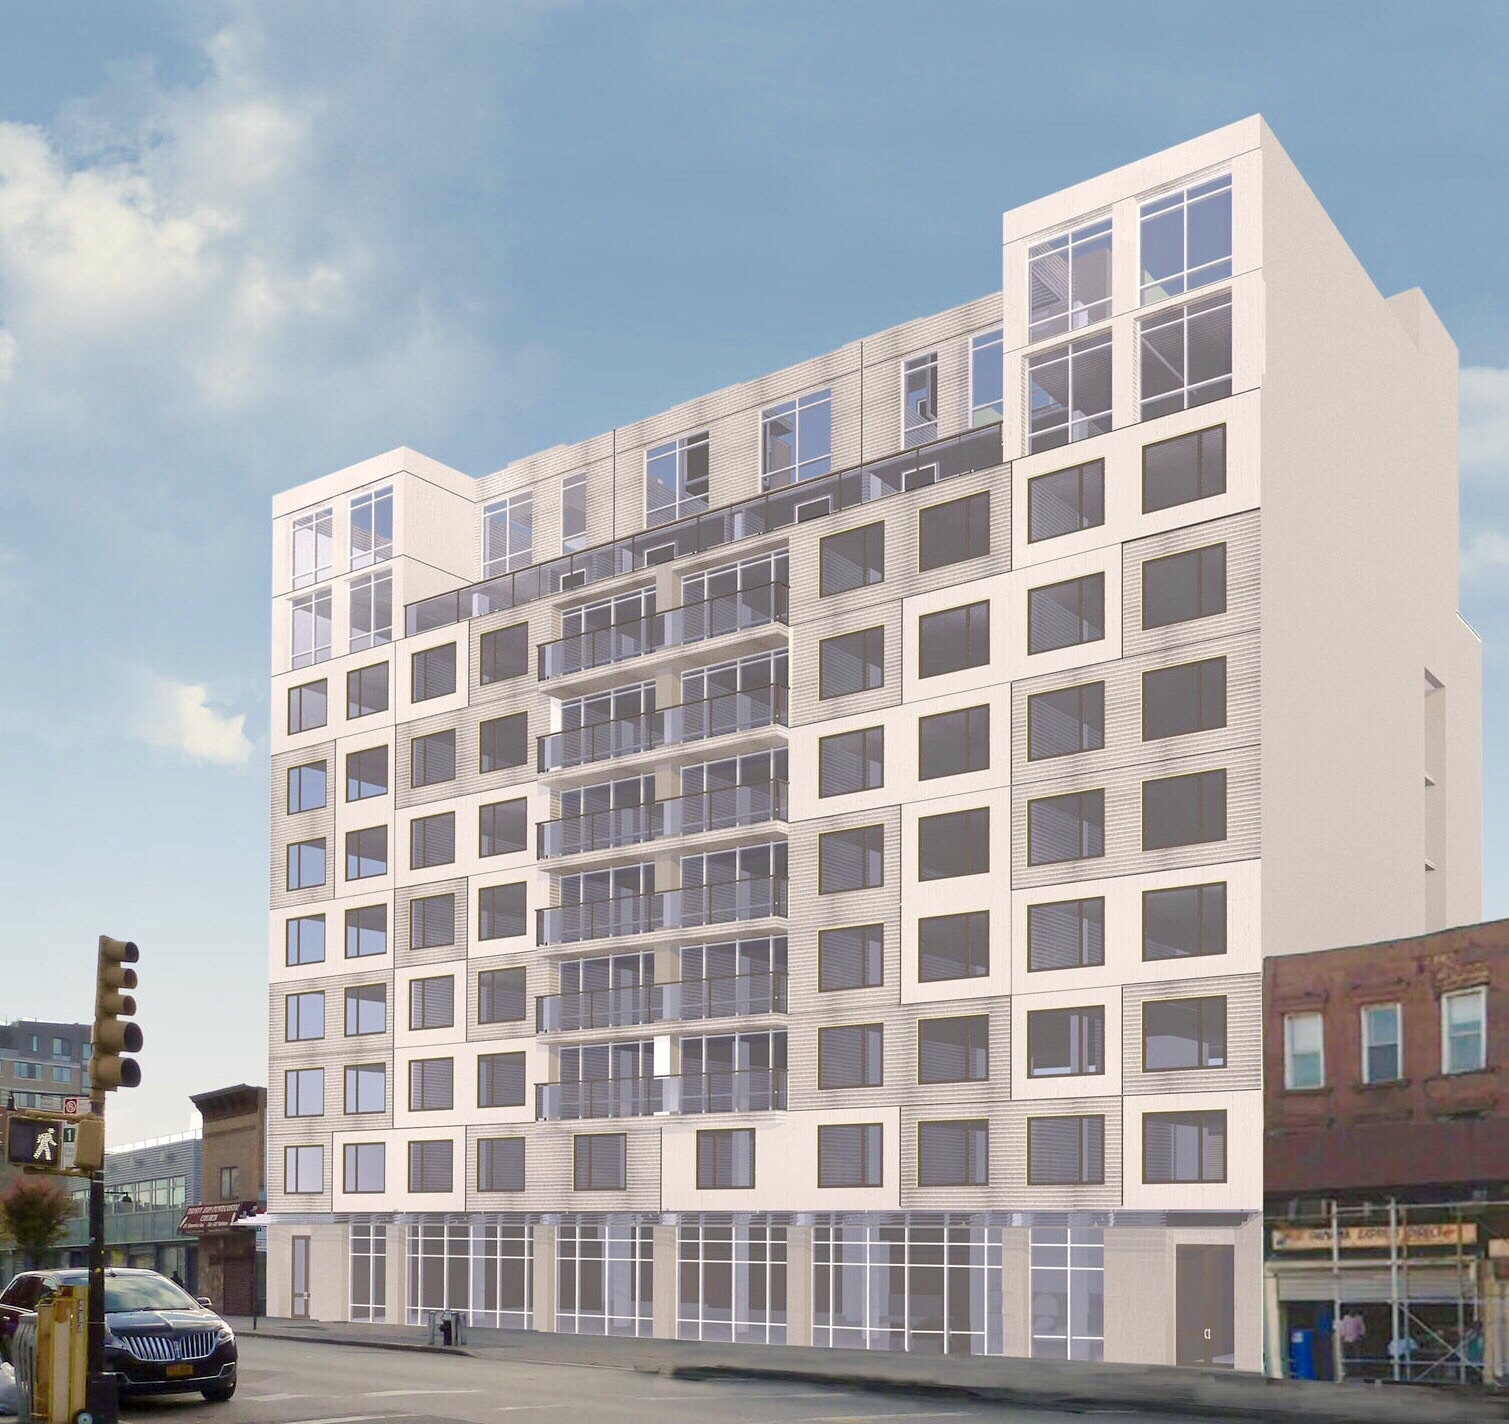 1520 fulton street new rendering bed stuy